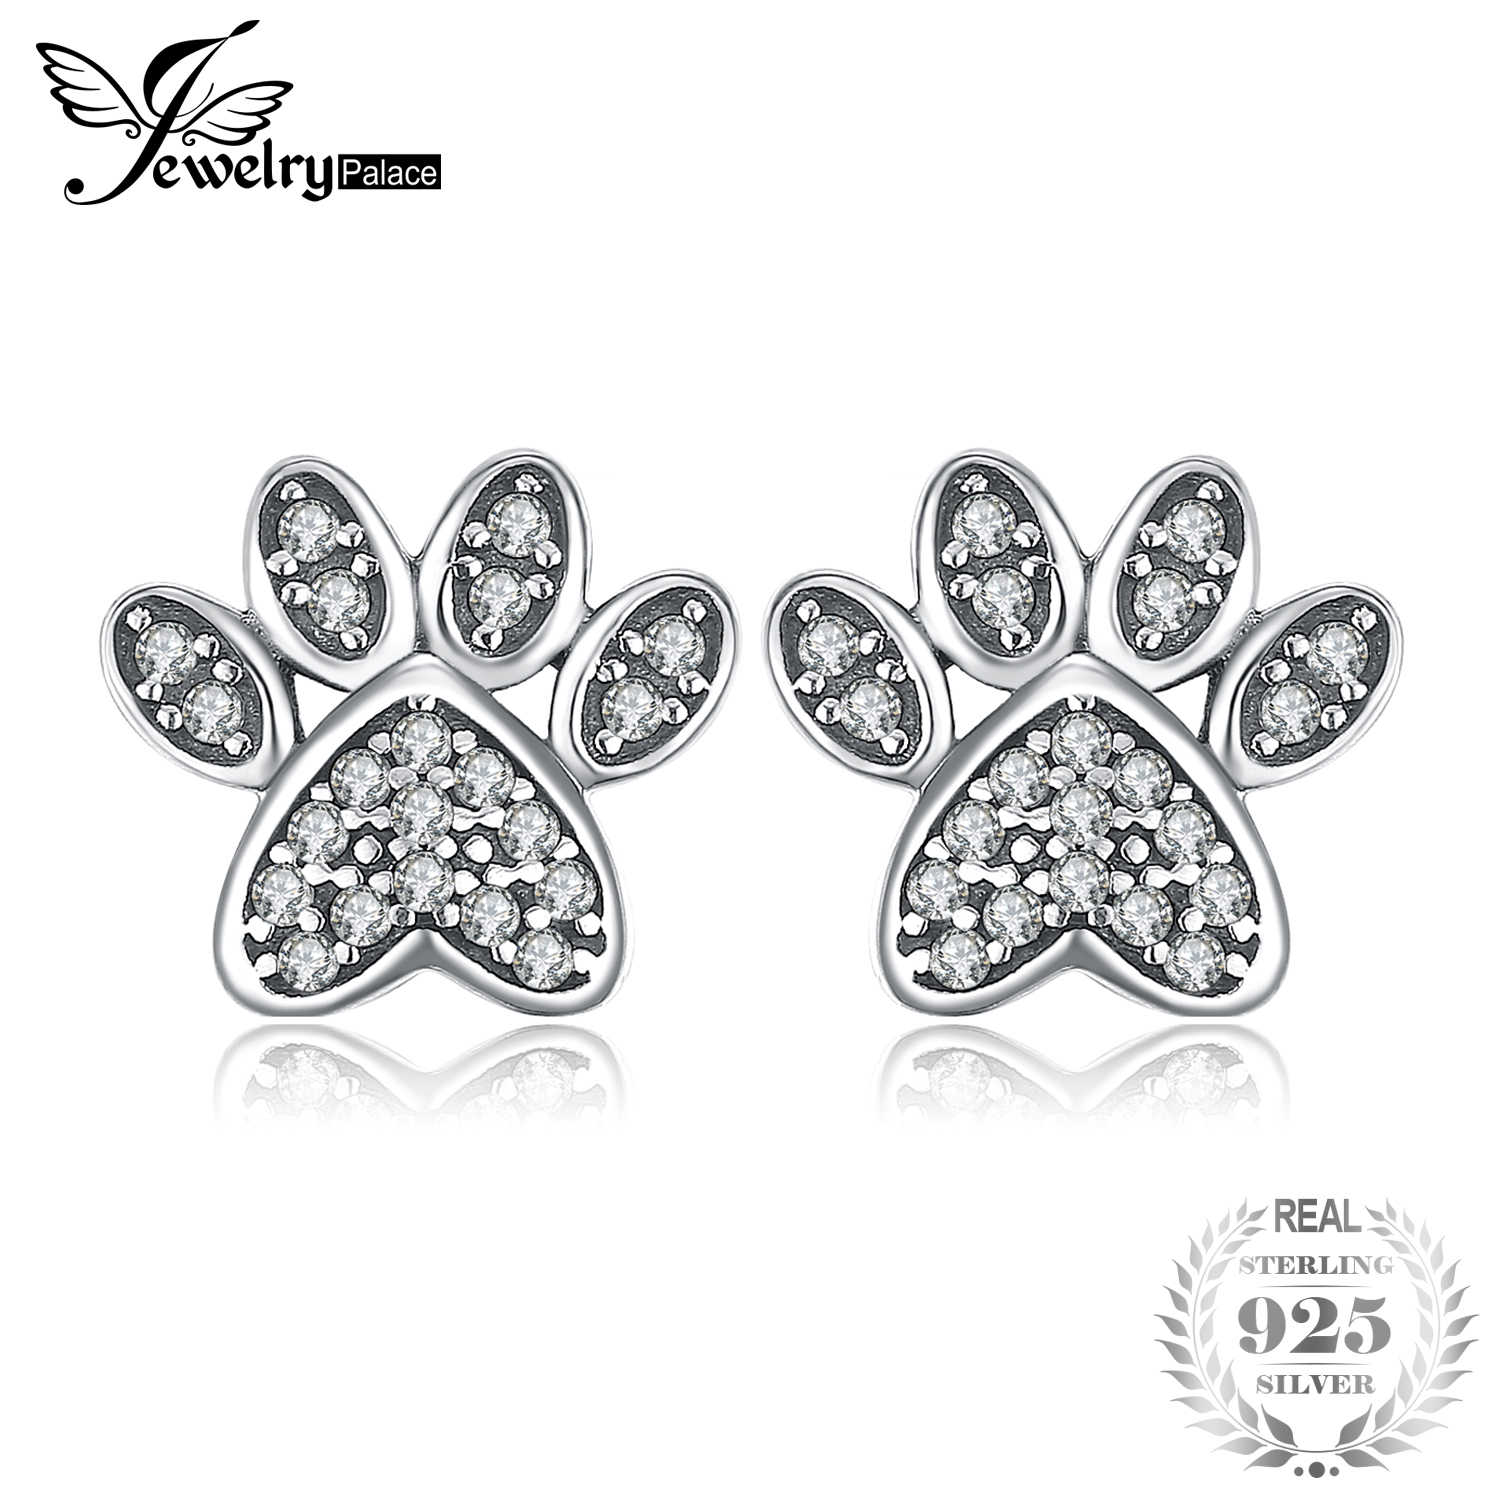 8aeb307c2 JewelryPalace Vintage Dog Paw Fingerprint Pave 0.2ct Cubic Zirconia Stud  Earrings 925 Sterling Silver Fashion